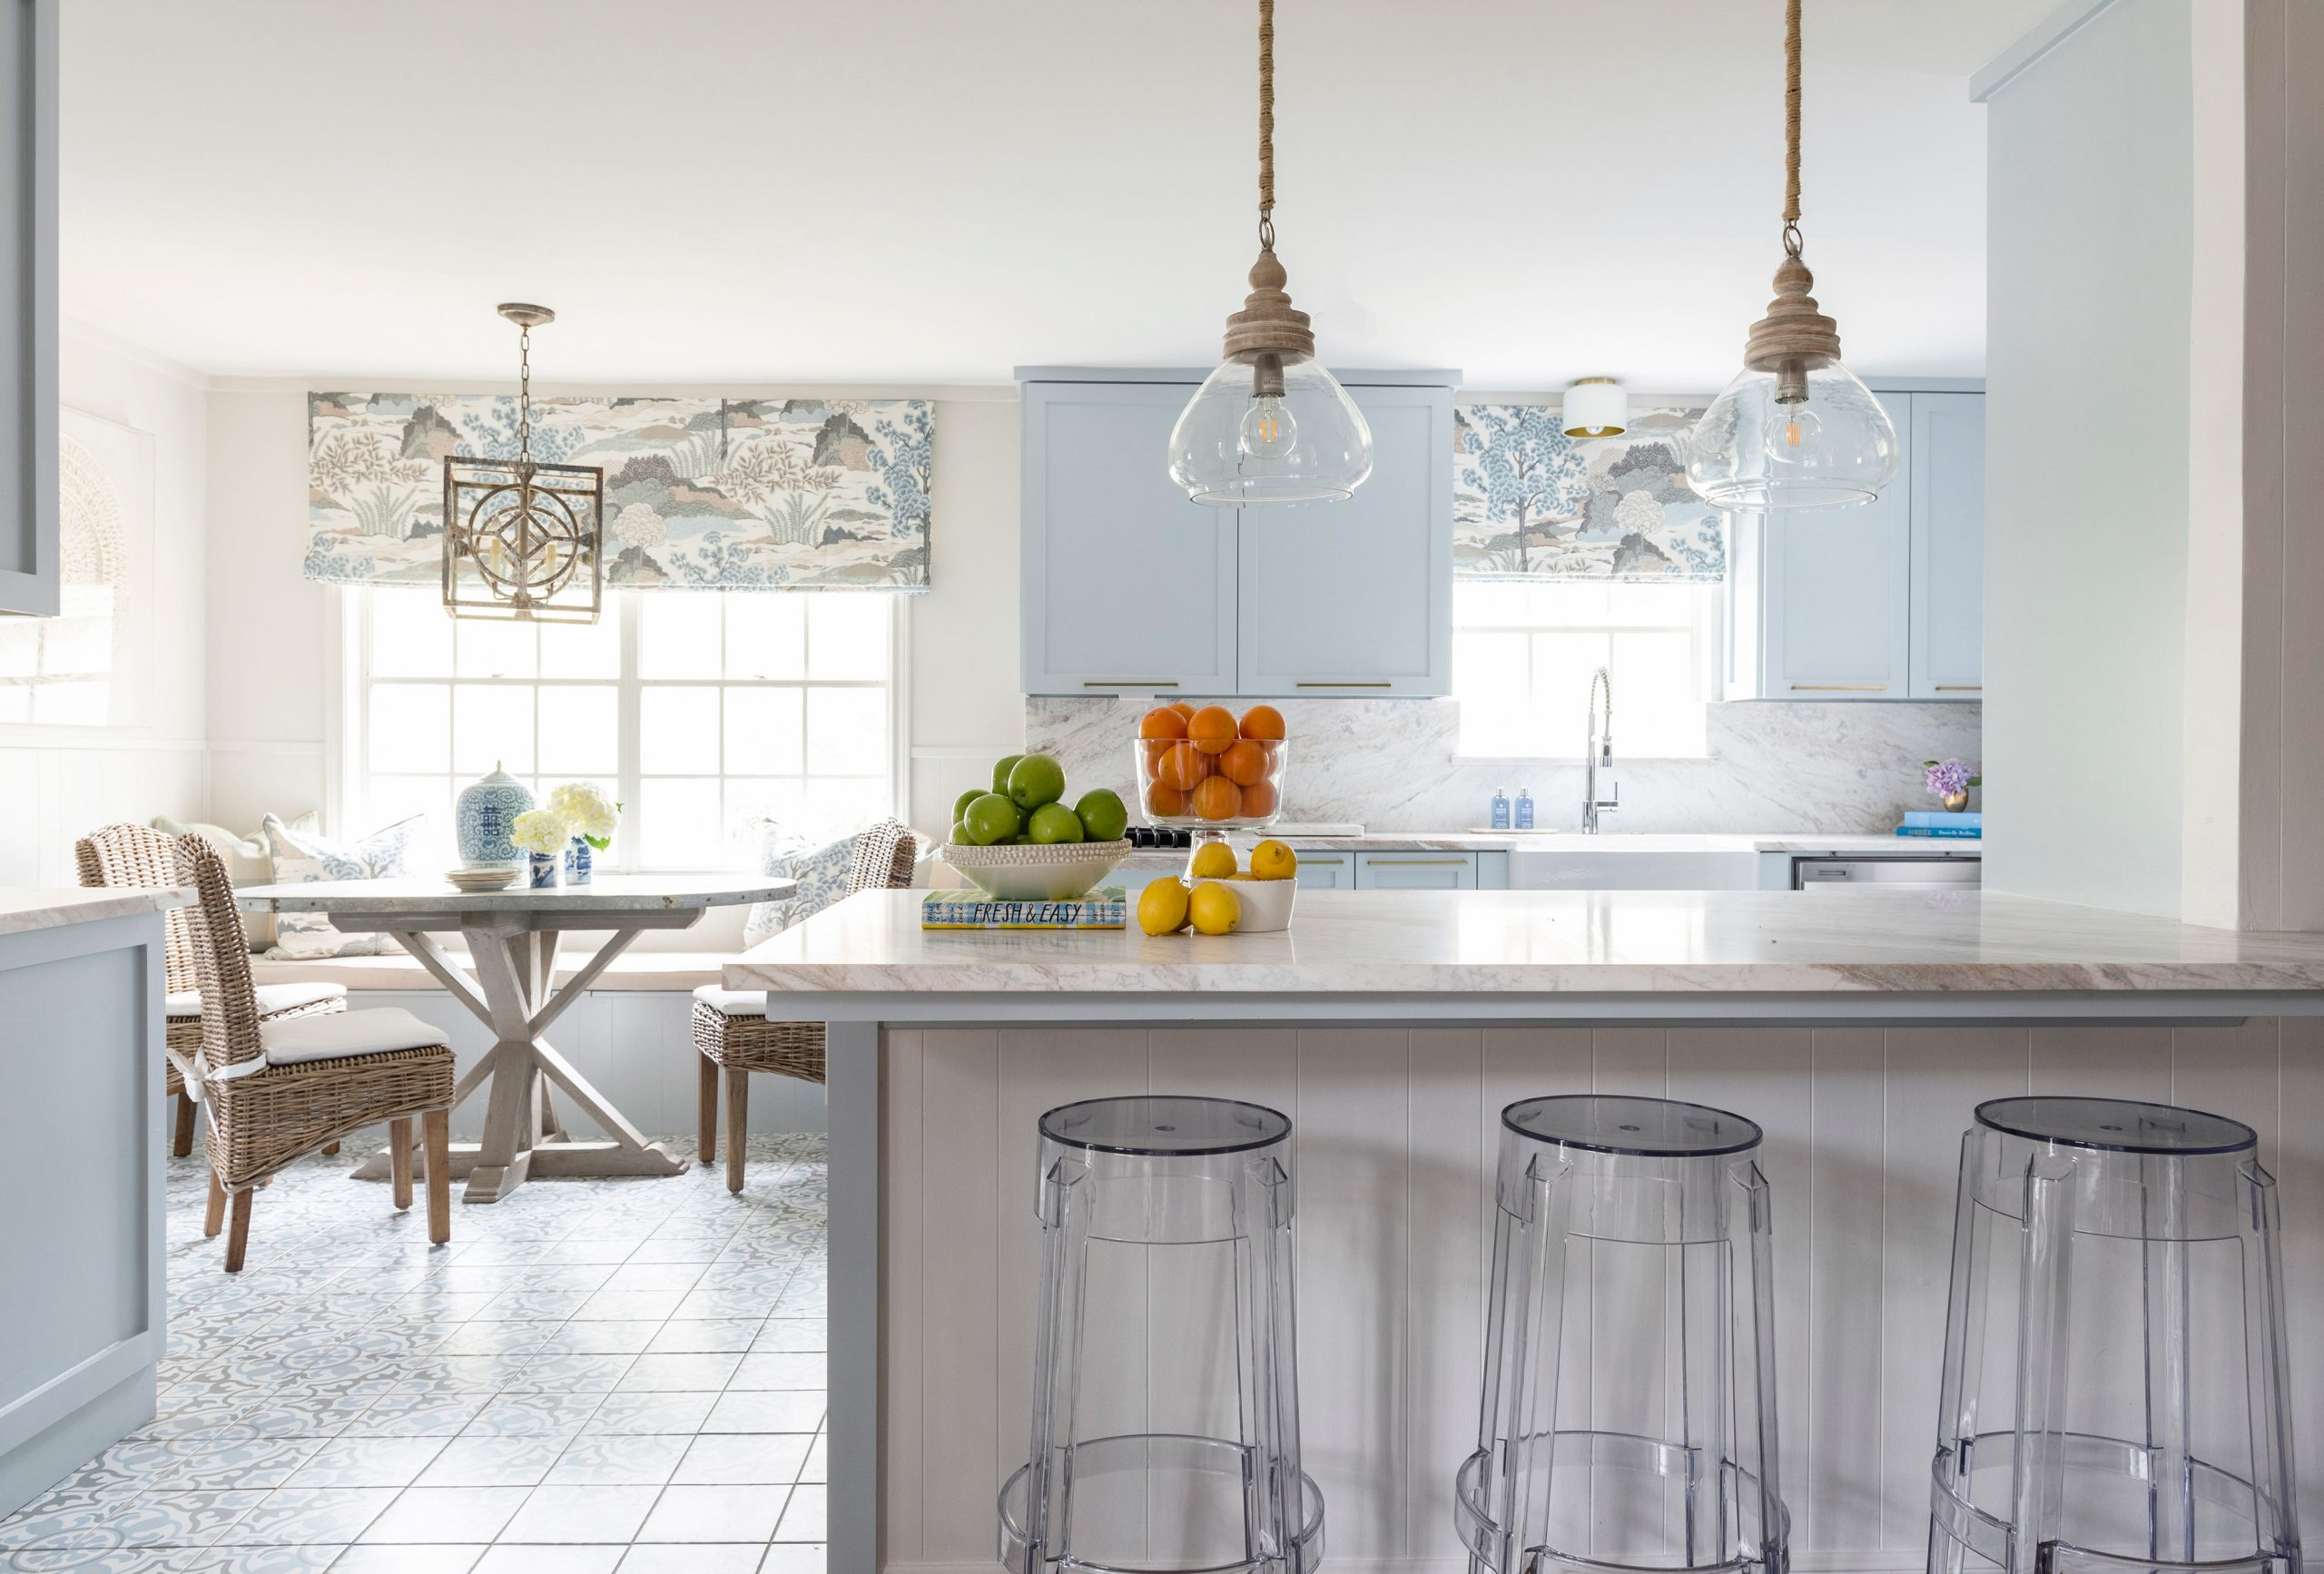 tiled kitchen with marble counter tops - Creative Tonic